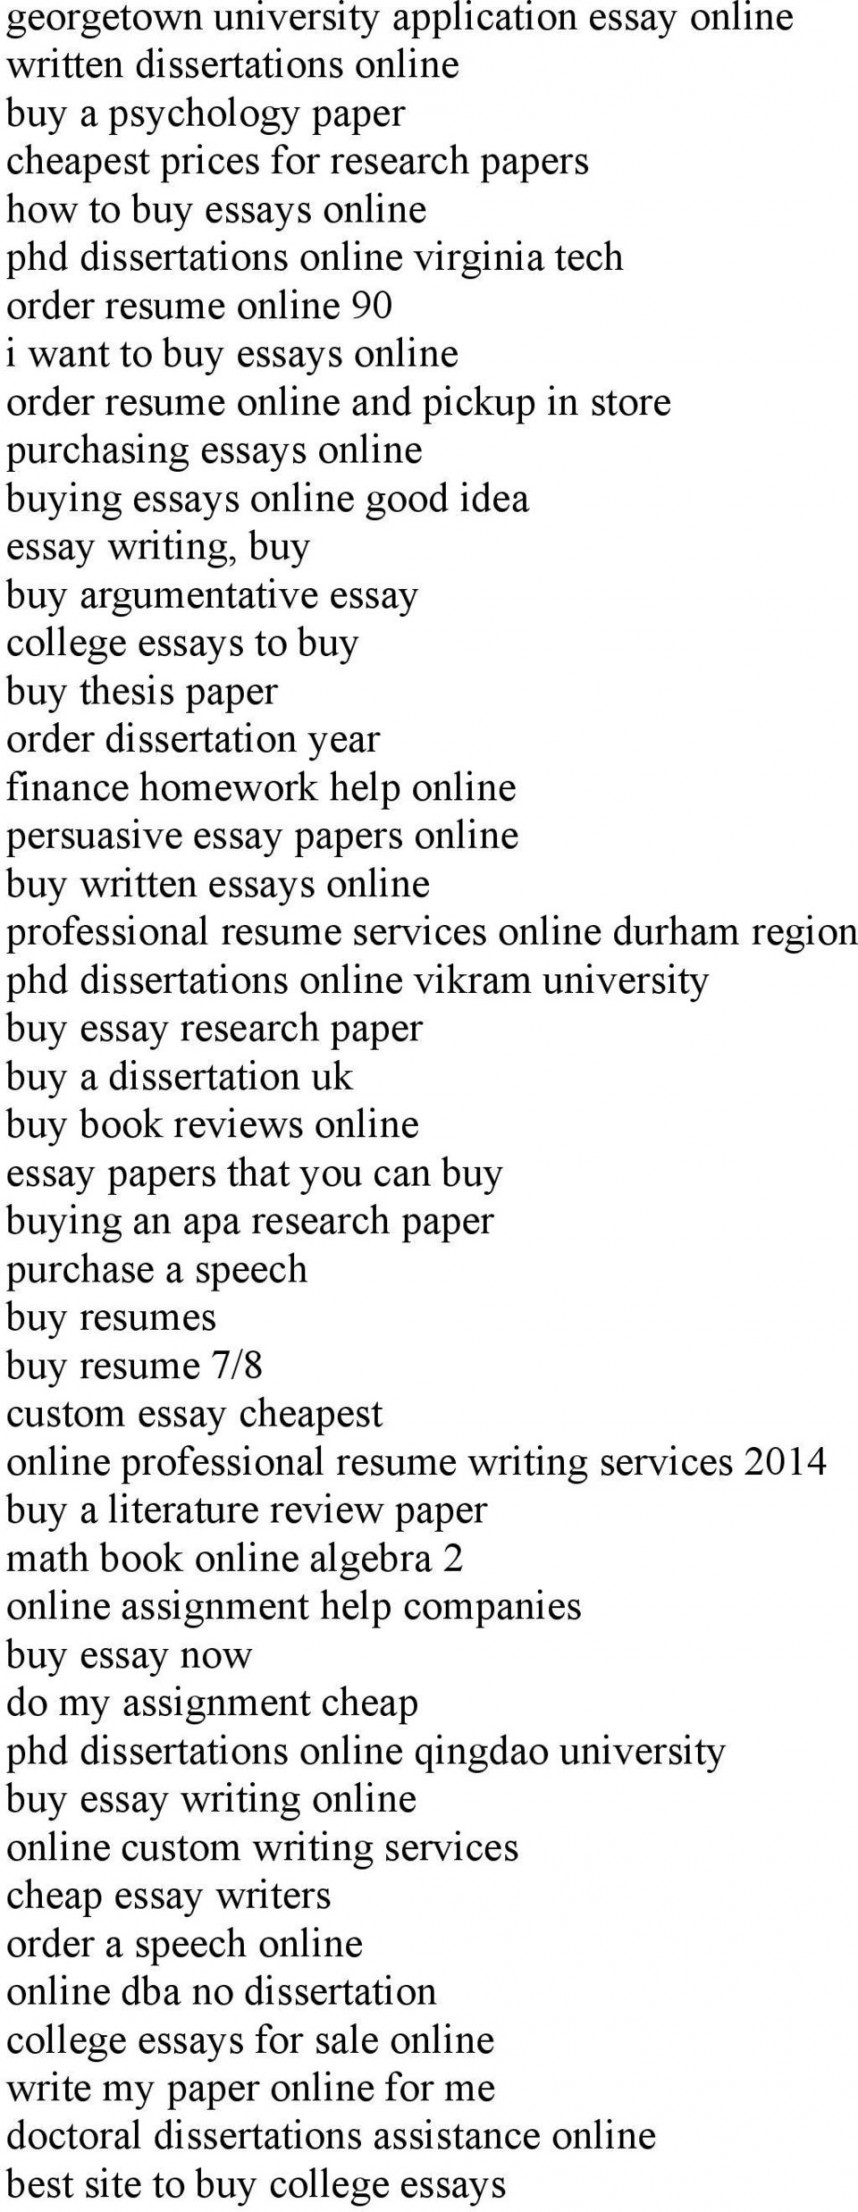 004 Research Paper Buying Page 4 Best A Online Behavior Impulse Impact Of Advertising On Consumer Behaviour 868